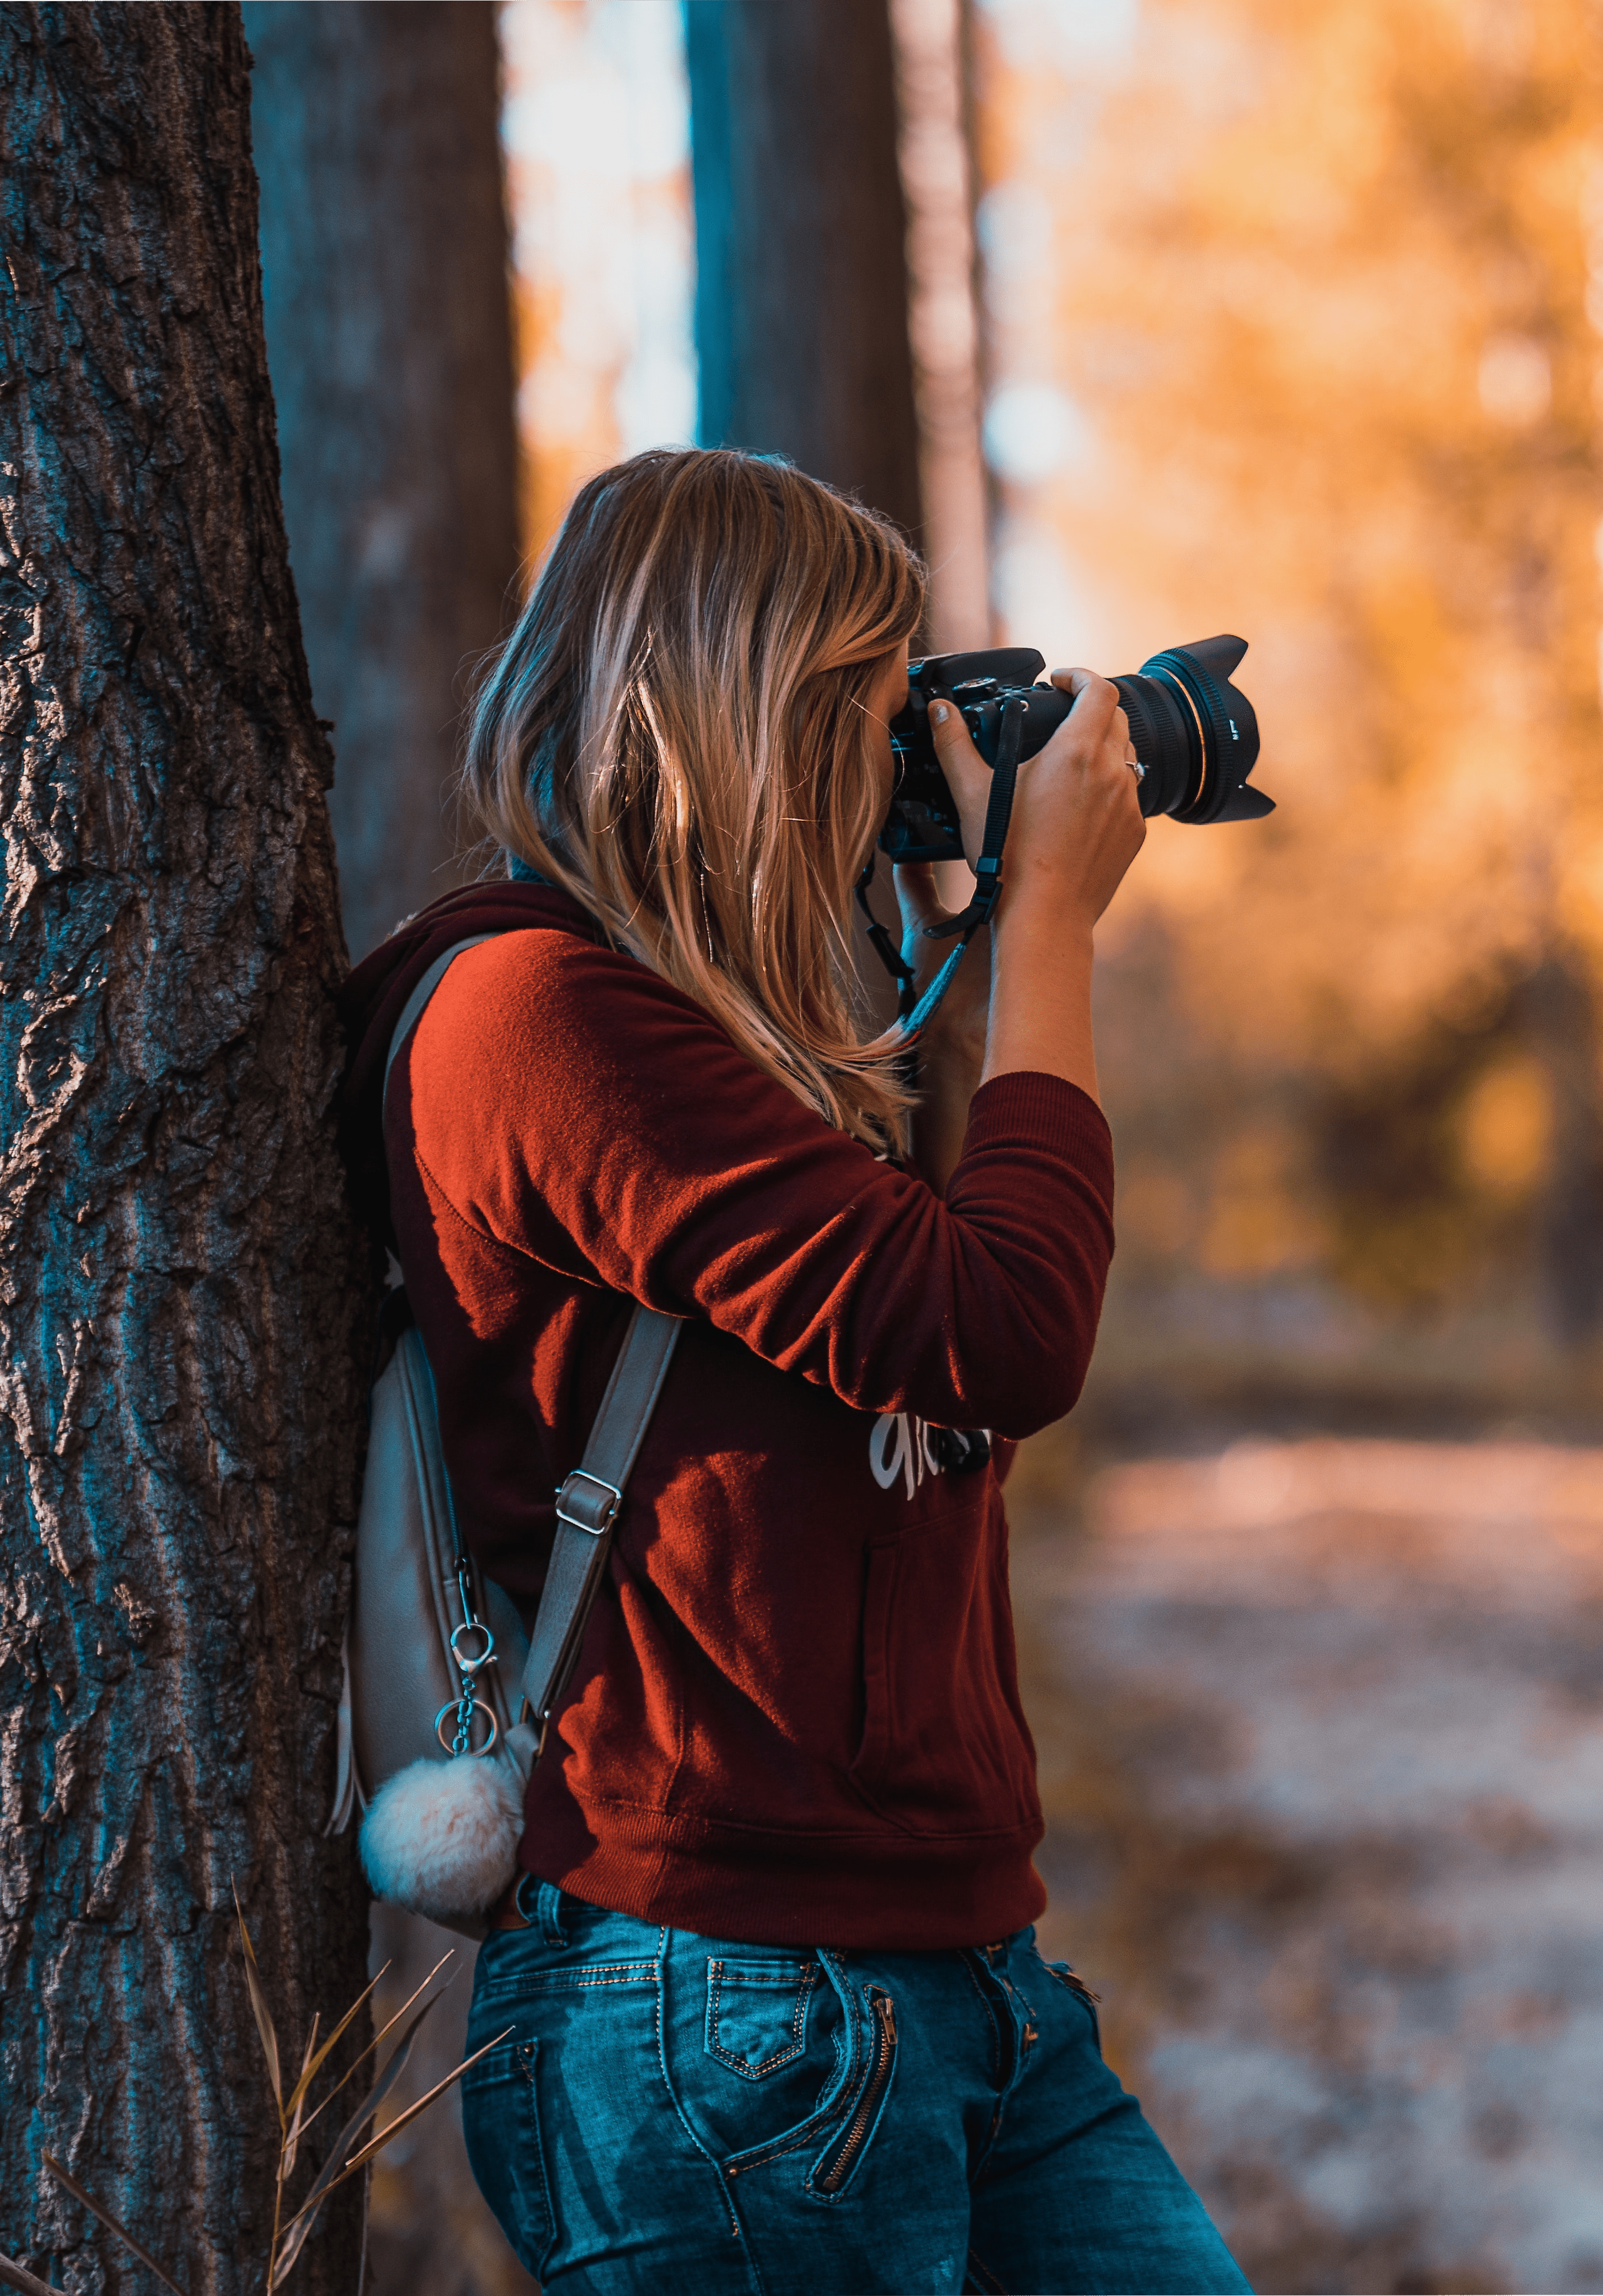 Photography Scholarships for Creative High School Students